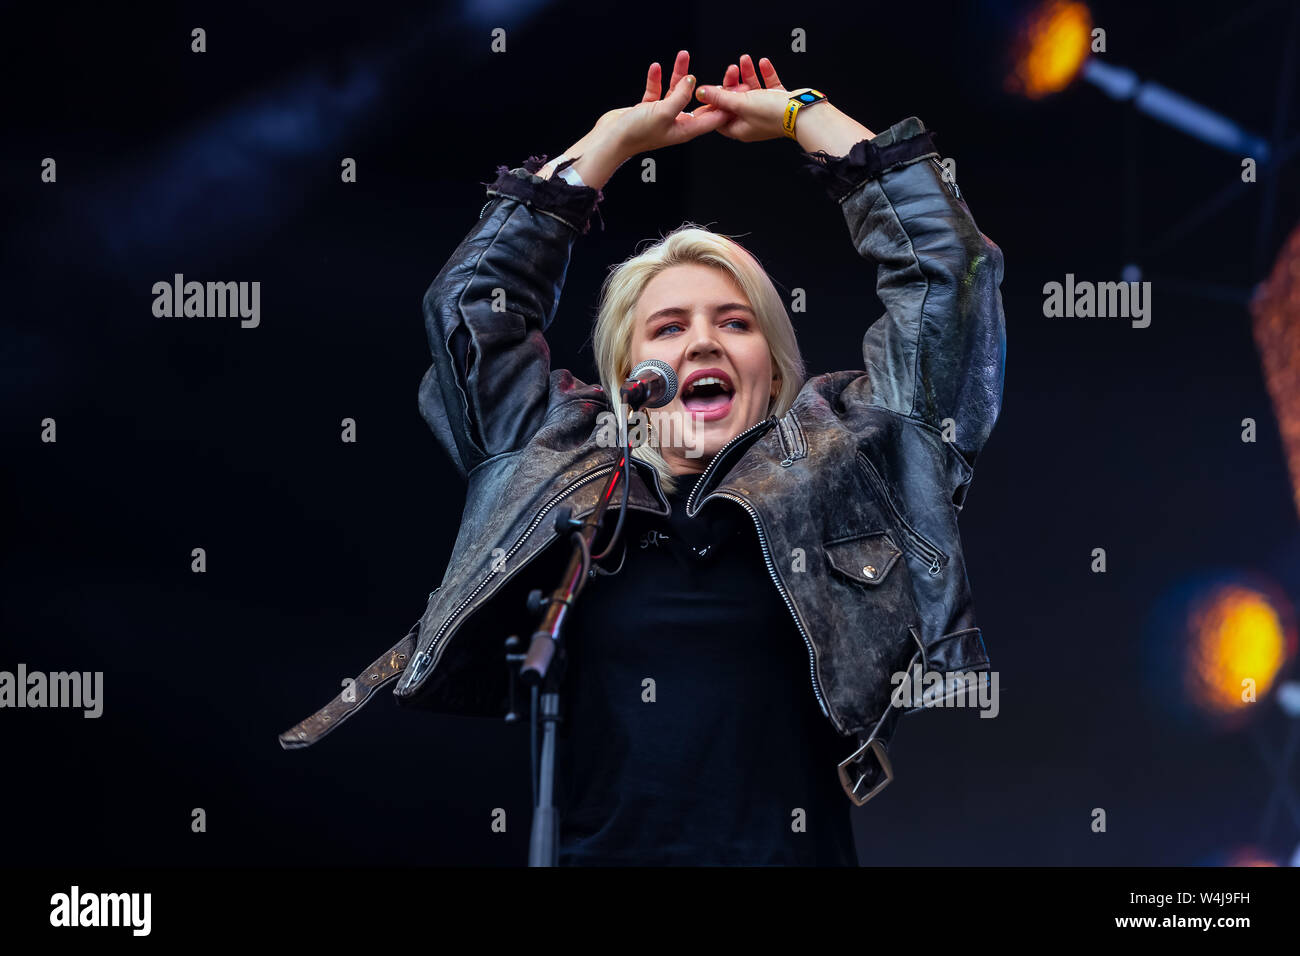 July 19 2019 Rebecca Lucy Taylor Performing As Self Esteem At Bluedot Festival Jodrell Bank Uk Cheshire Credit Image C Andy Von Pip Zuma Wire Stock Photo Alamy